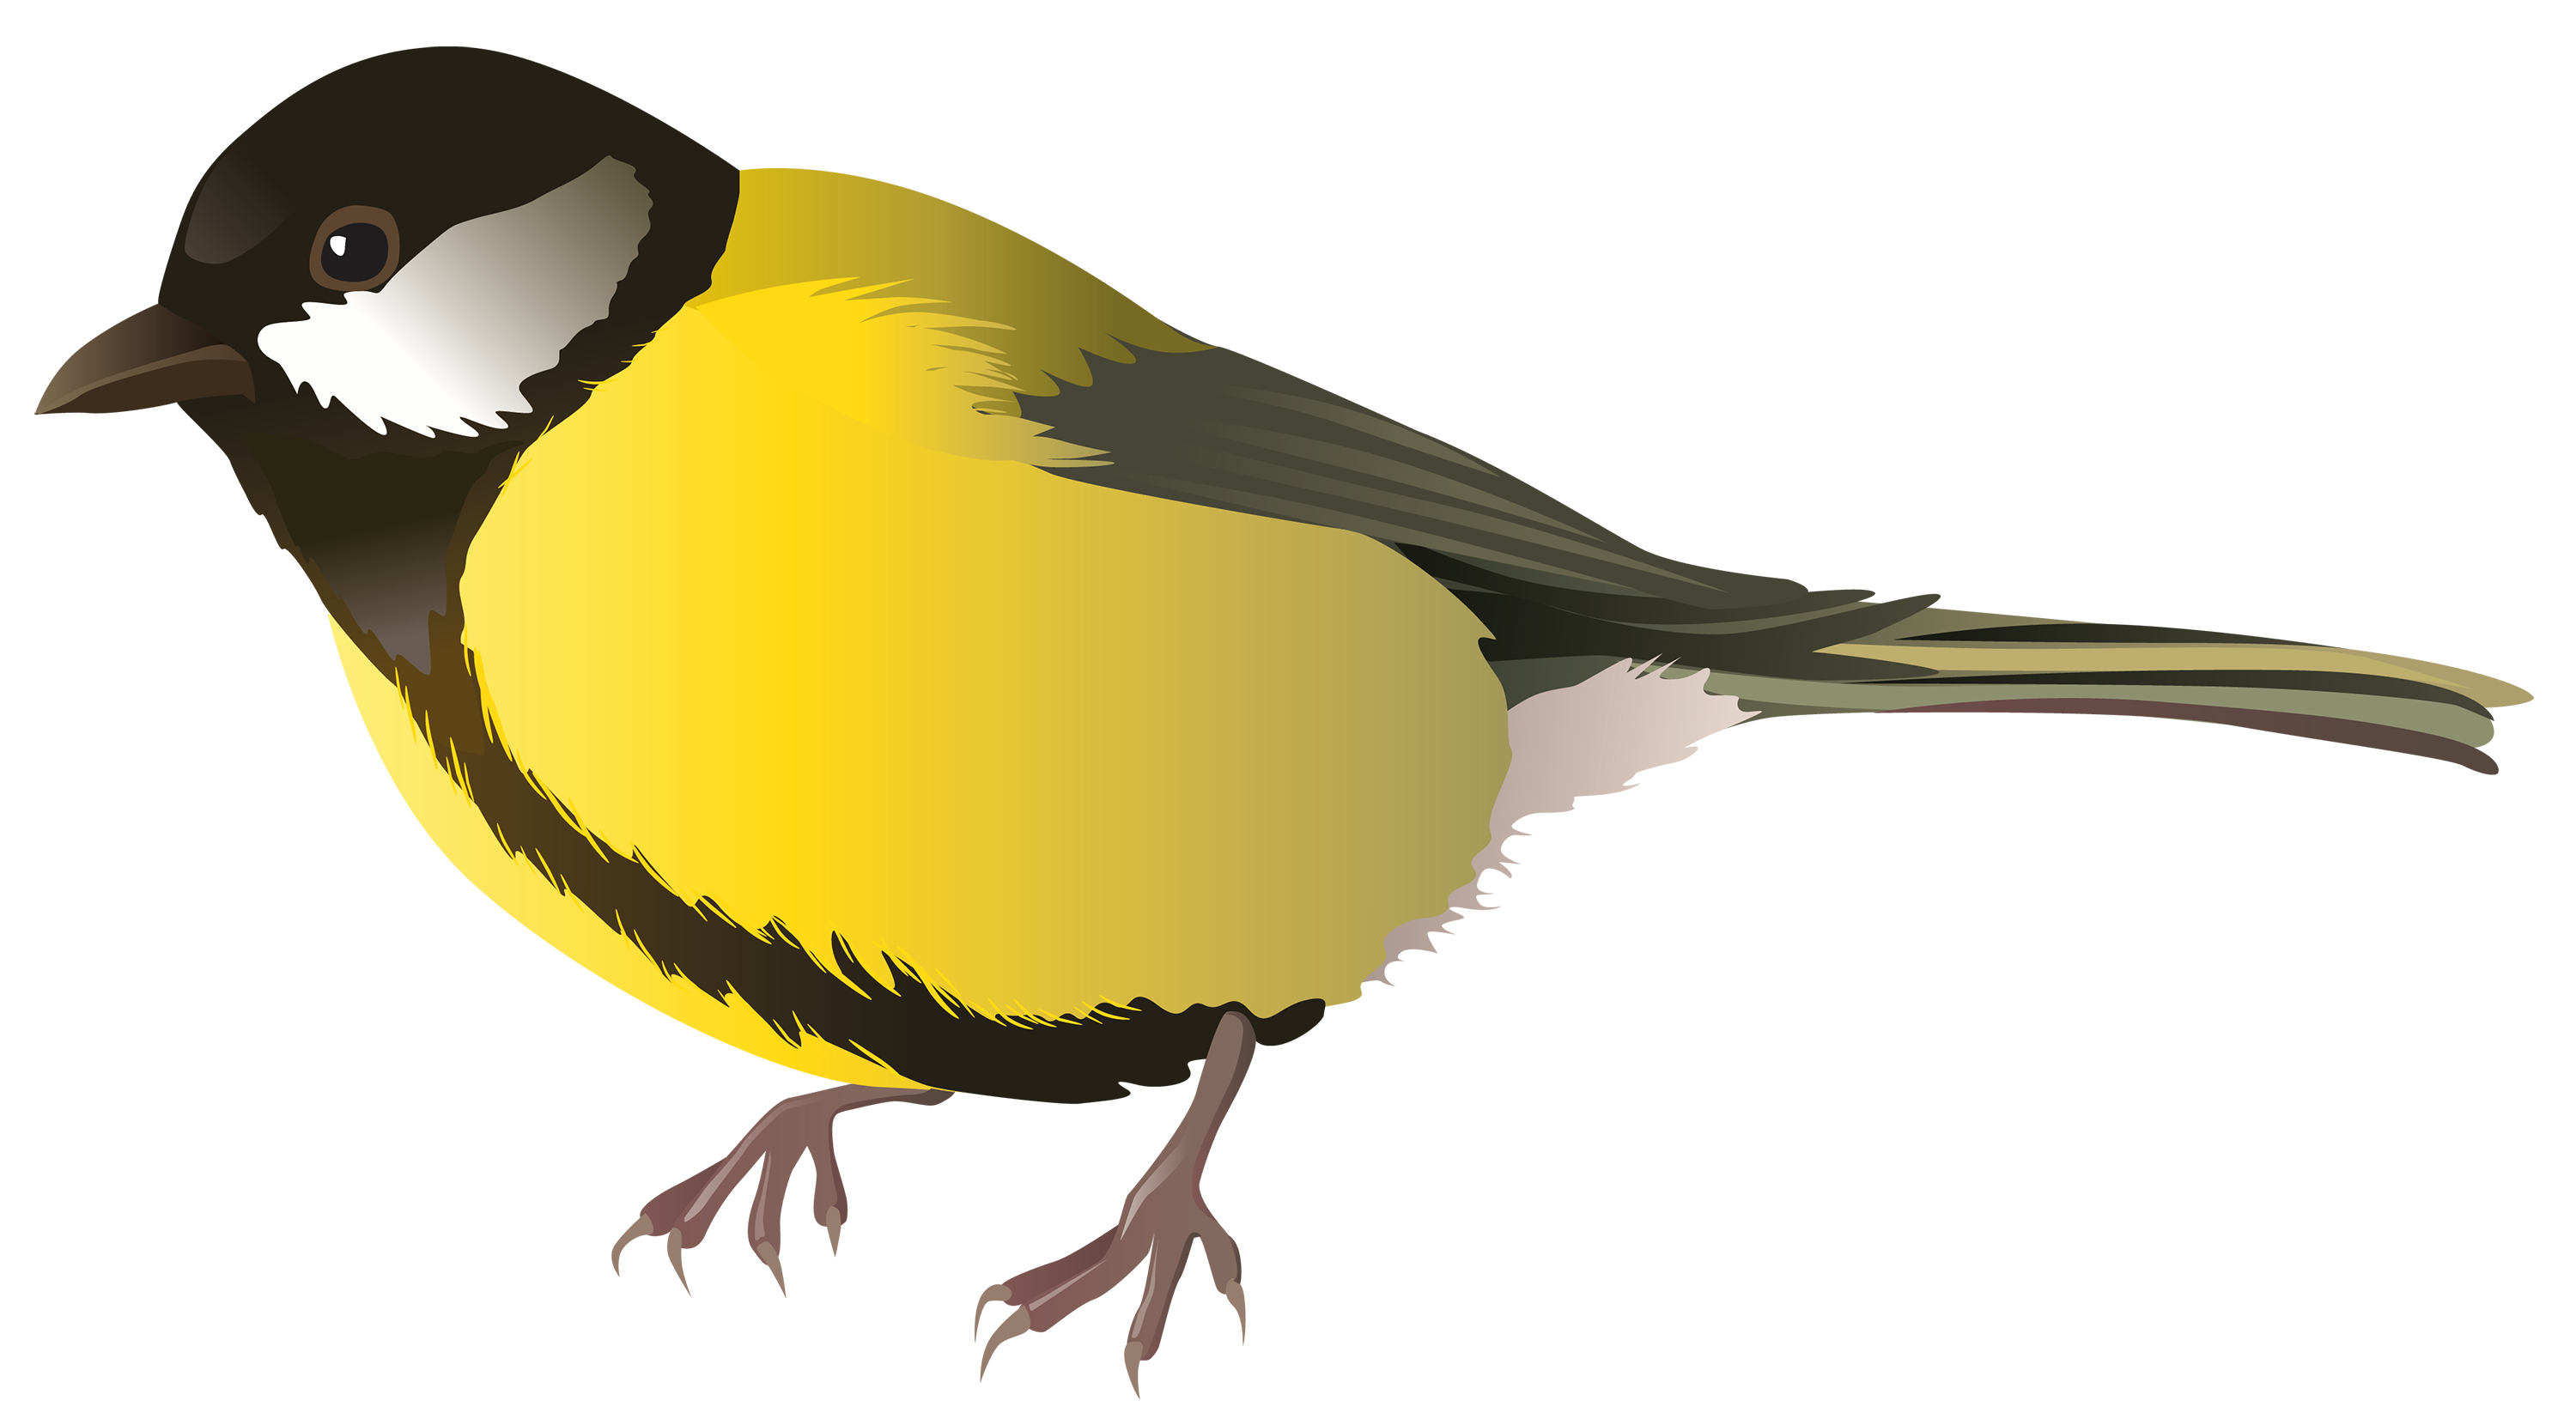 Birds coming out of a book clipart graphic freeuse library Yellow Bird PNG Clipart - Best WEB Clipart graphic freeuse library